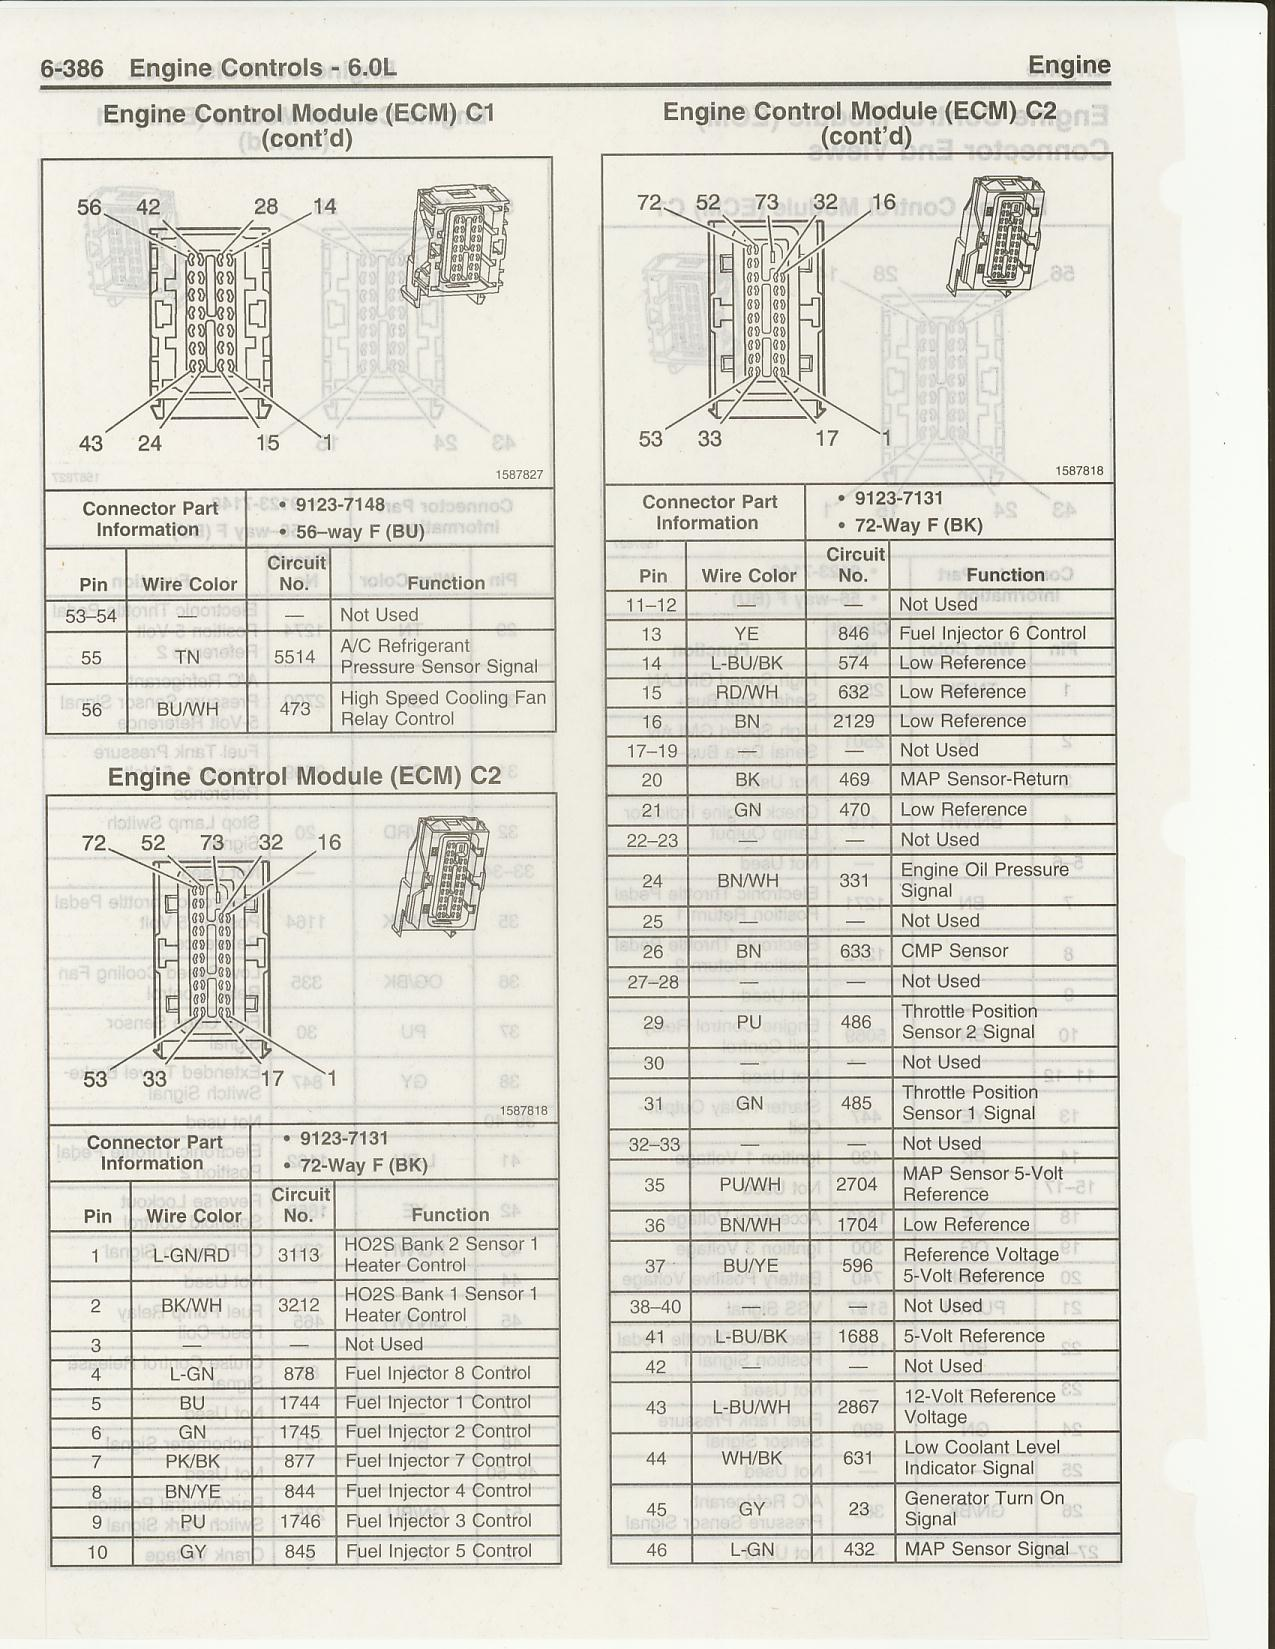 Pinouts And Wiring Diagrams Page 4 Ls1tech Camaro Firebird Diagram Wire Engine Schematiczes Ls2 C1 C2